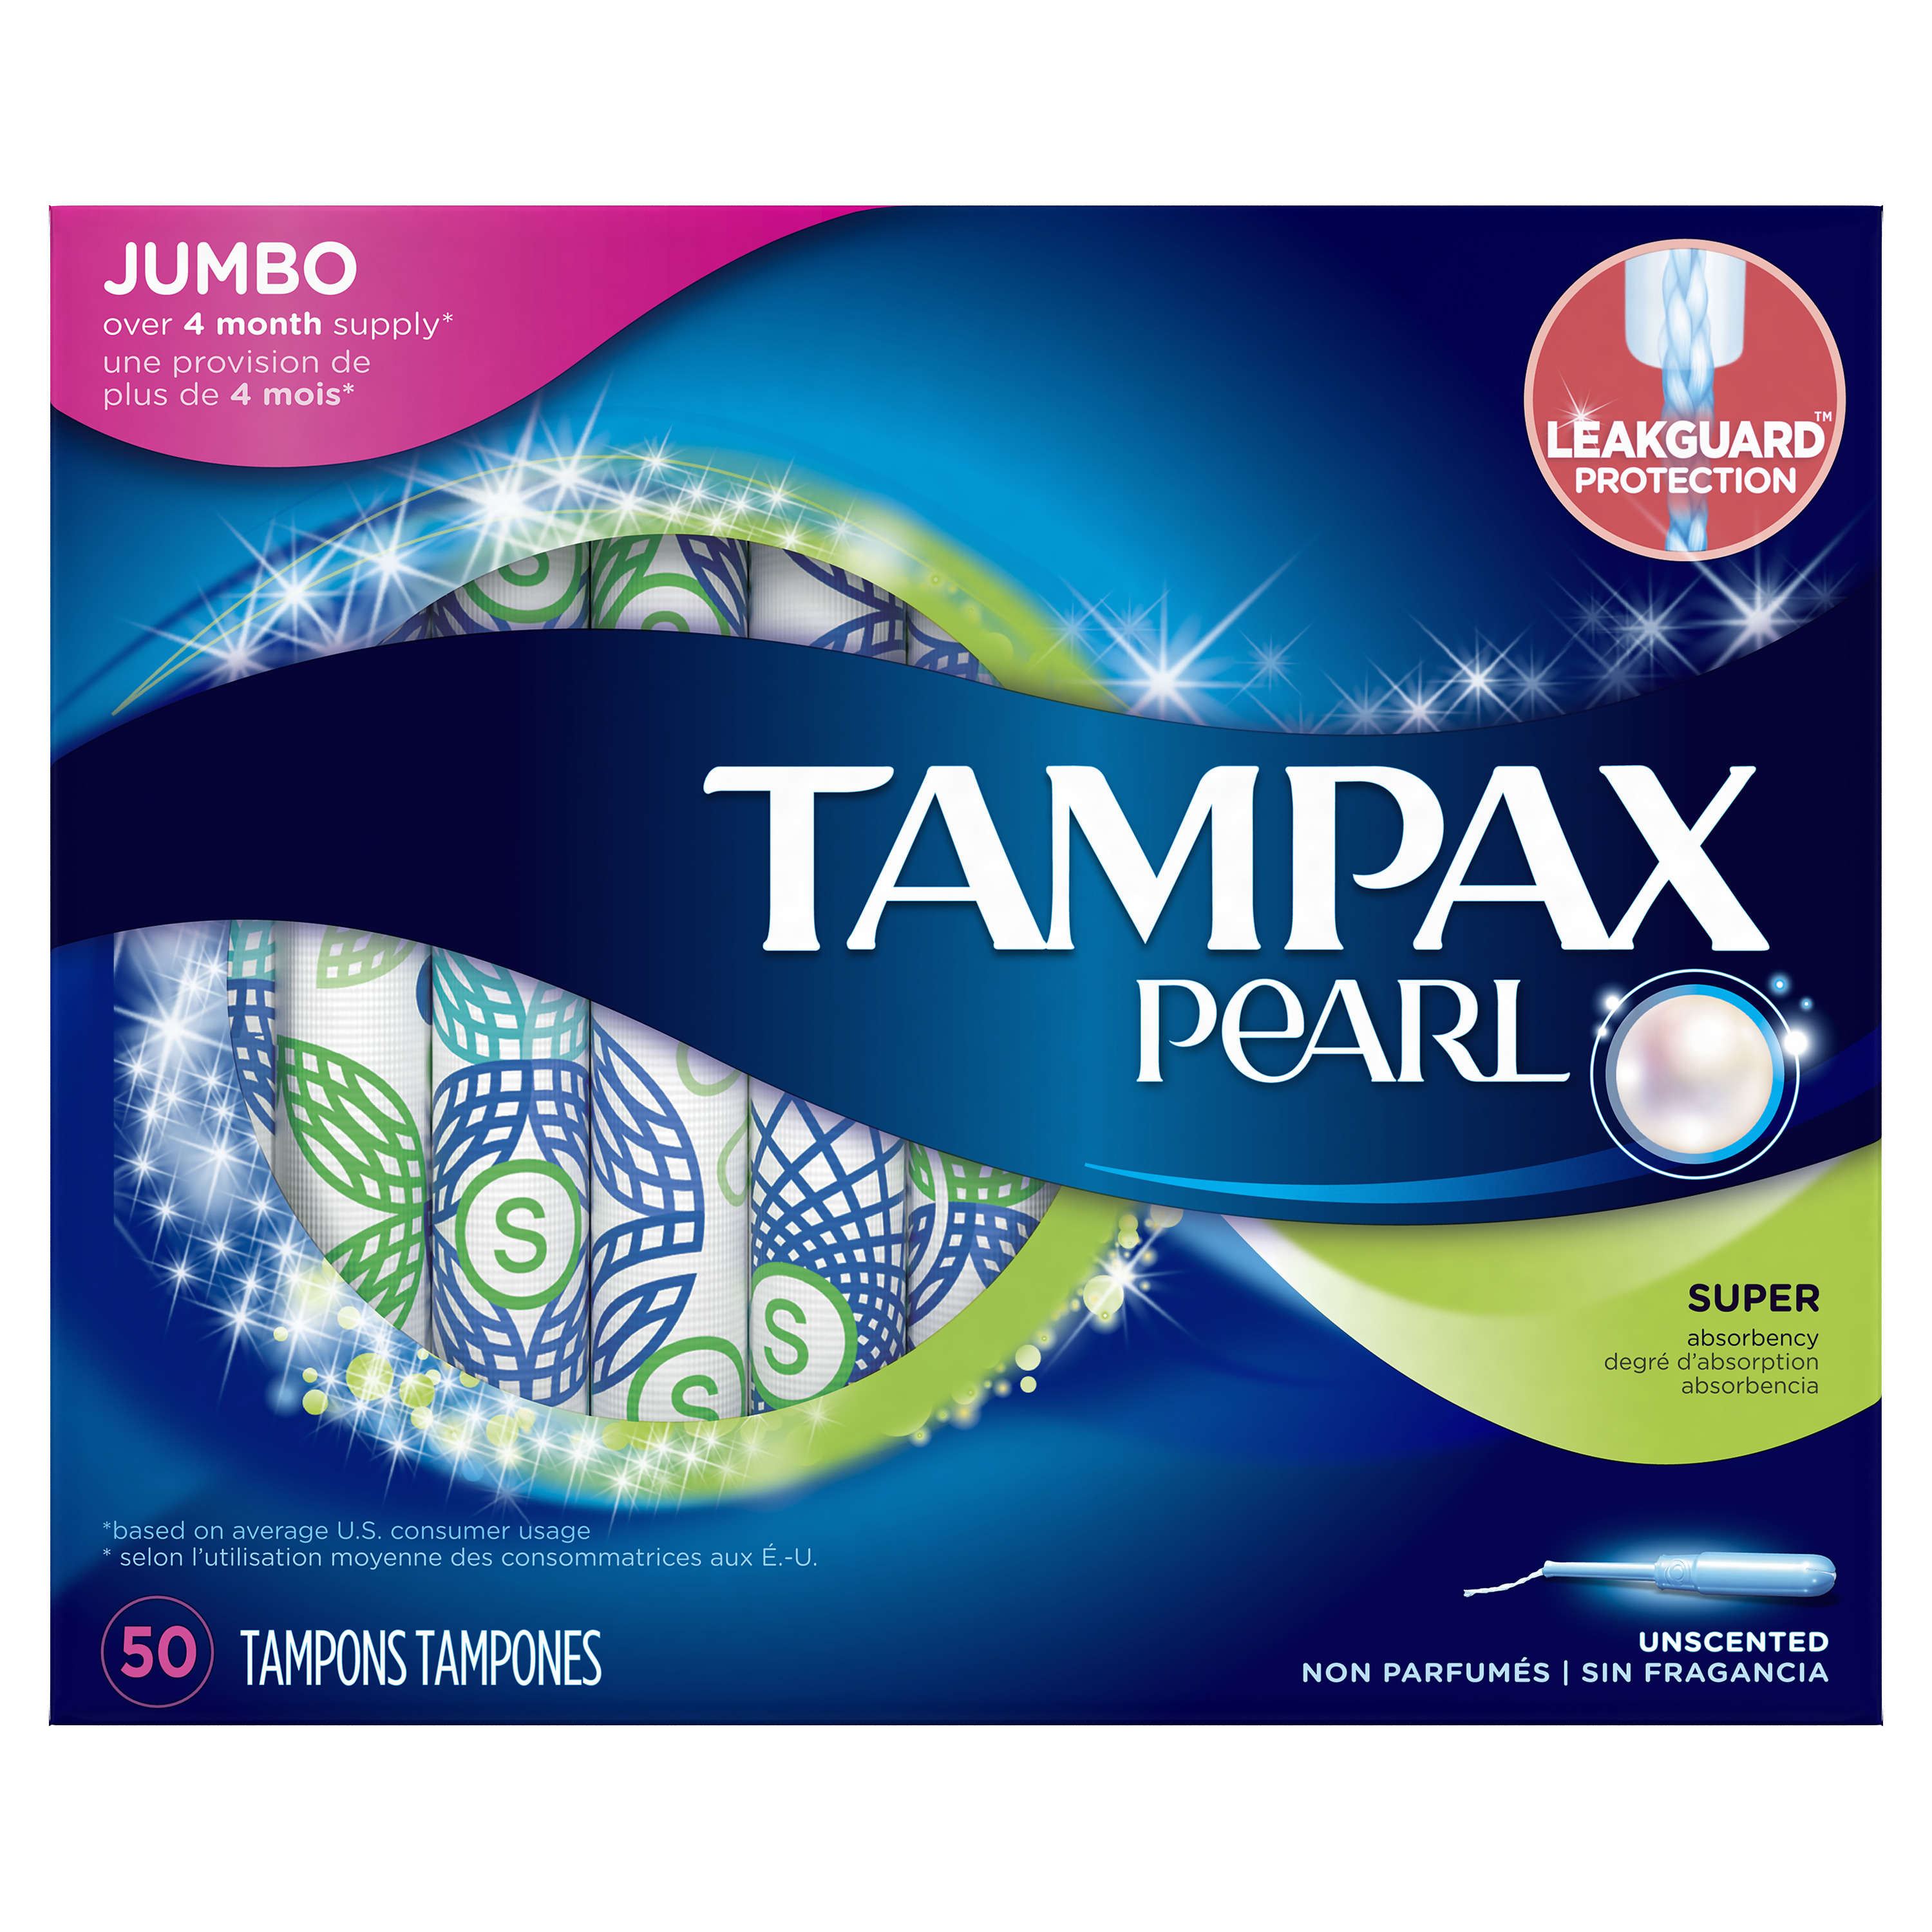 Tampax Pearl Super Plastic Tampons, Unscented, 50 Count